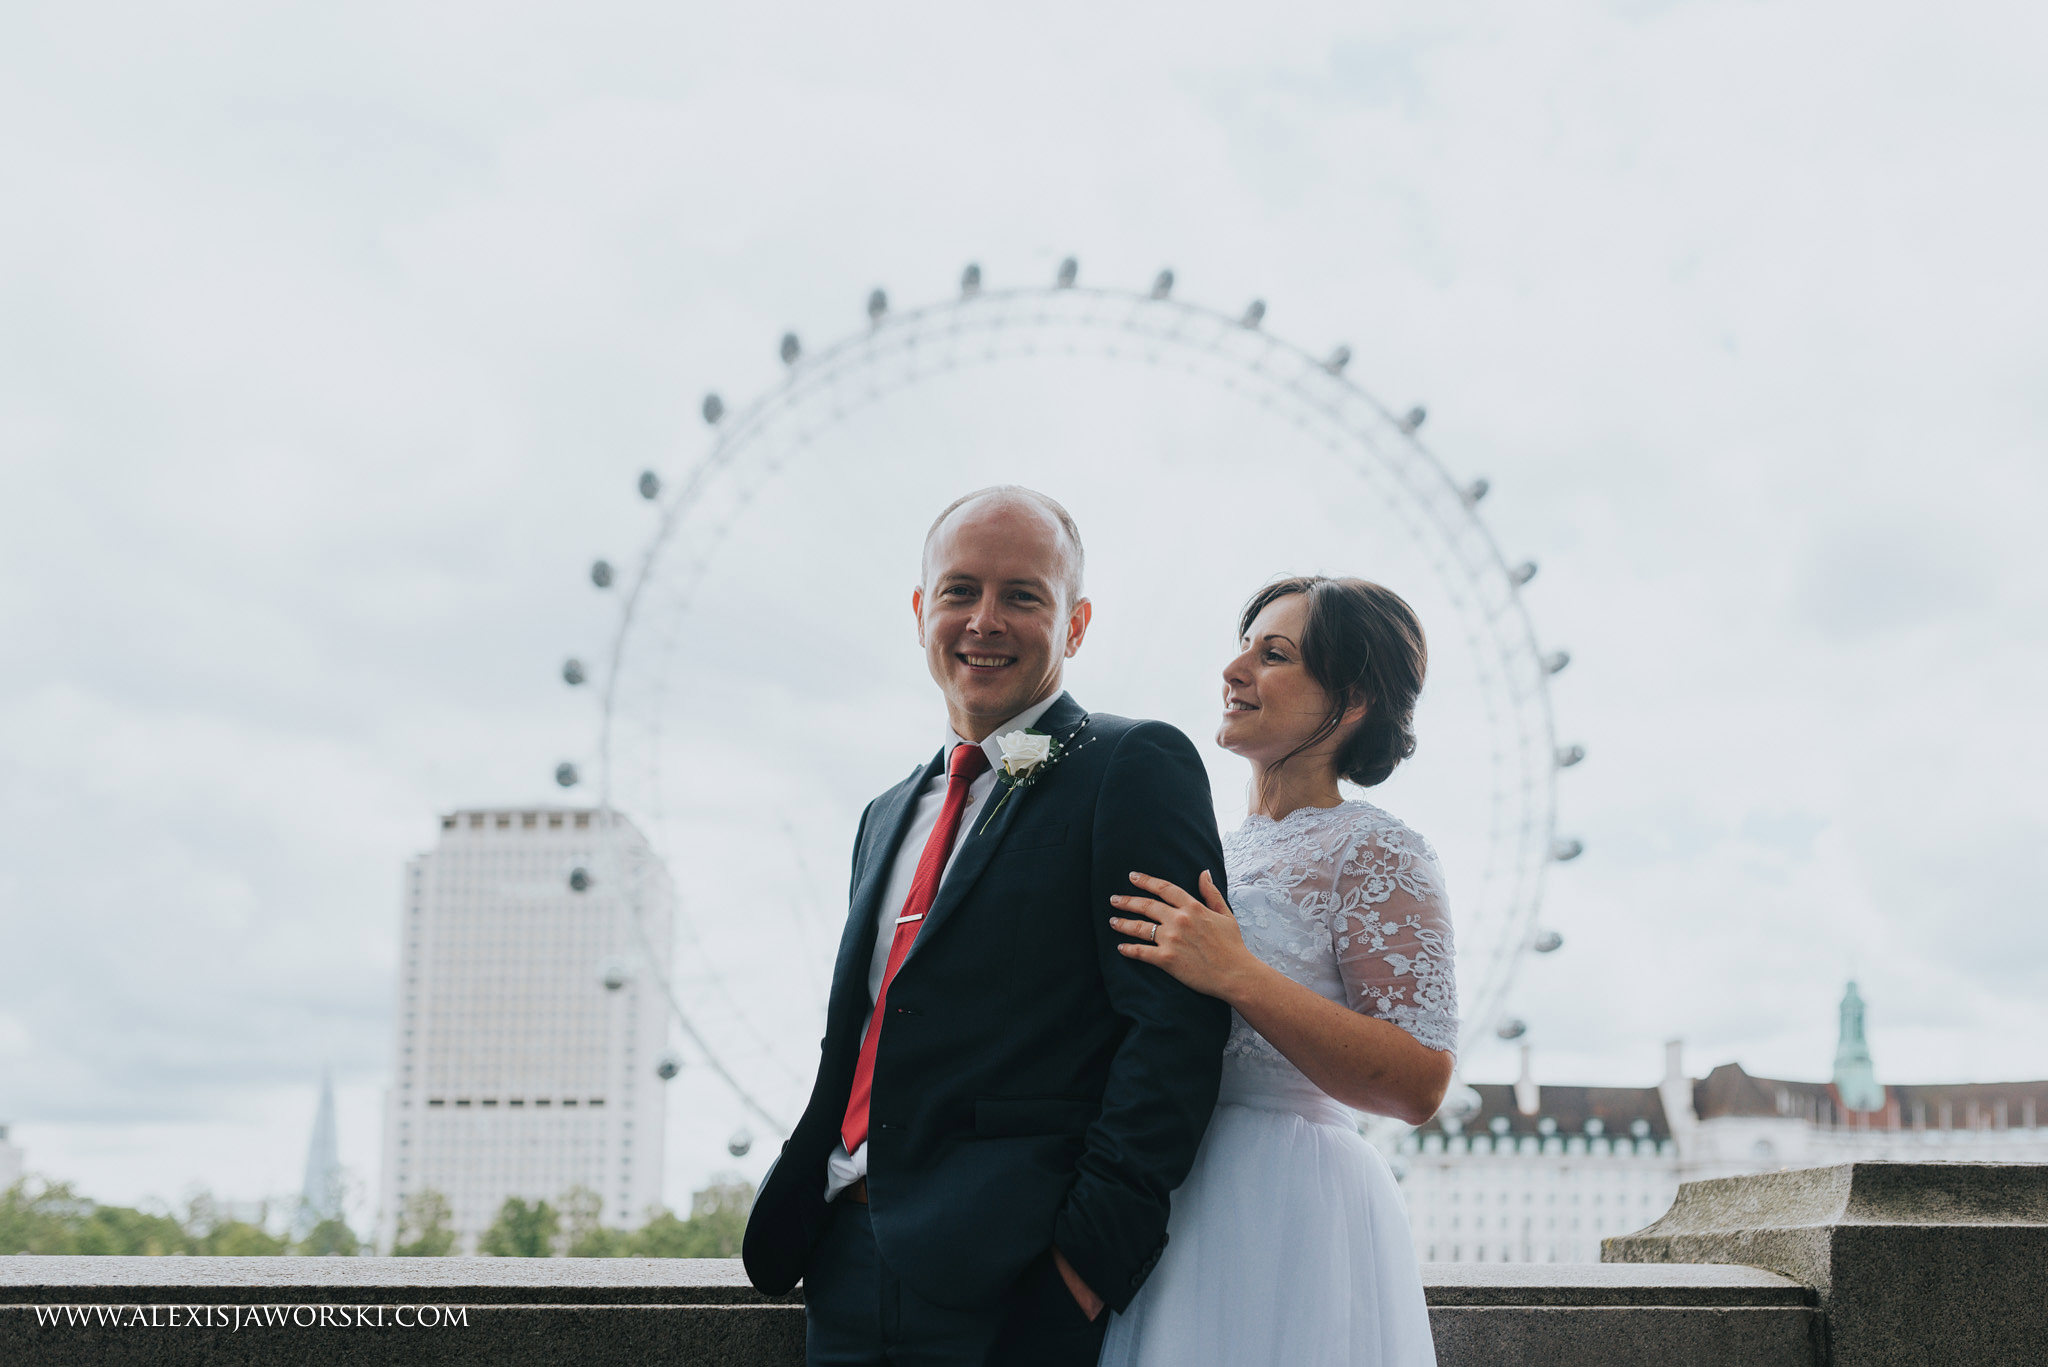 Creative portrait with the London Eye in the background